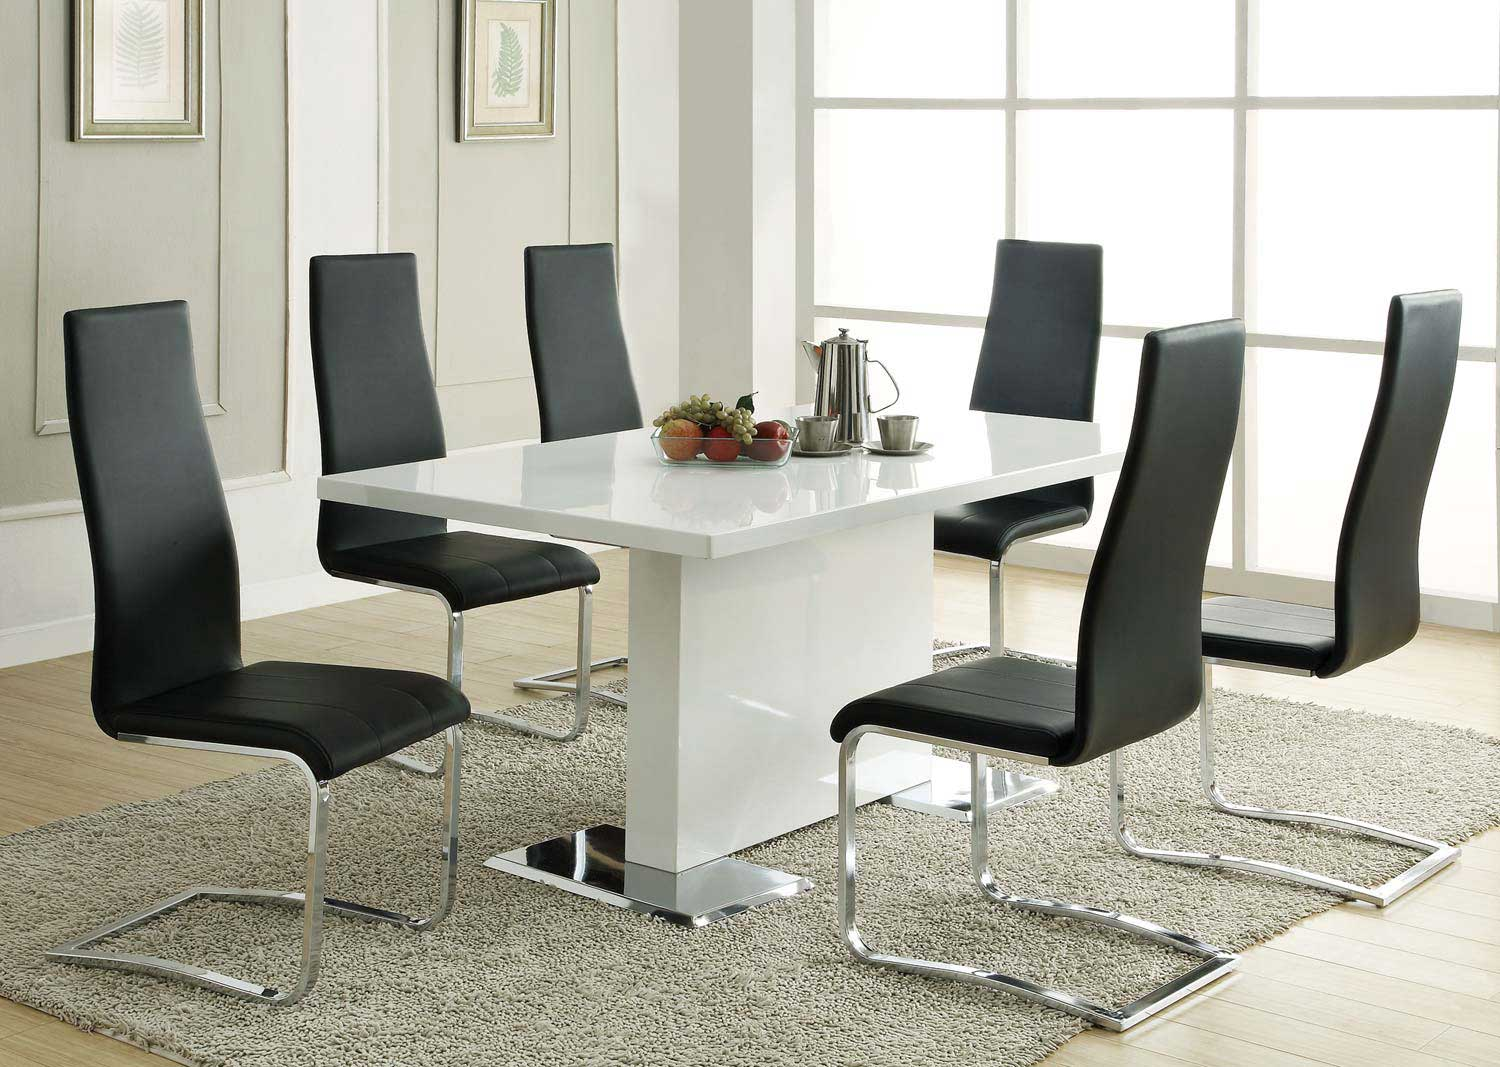 Coaster Mix & Match White Dining Set - Black Chair